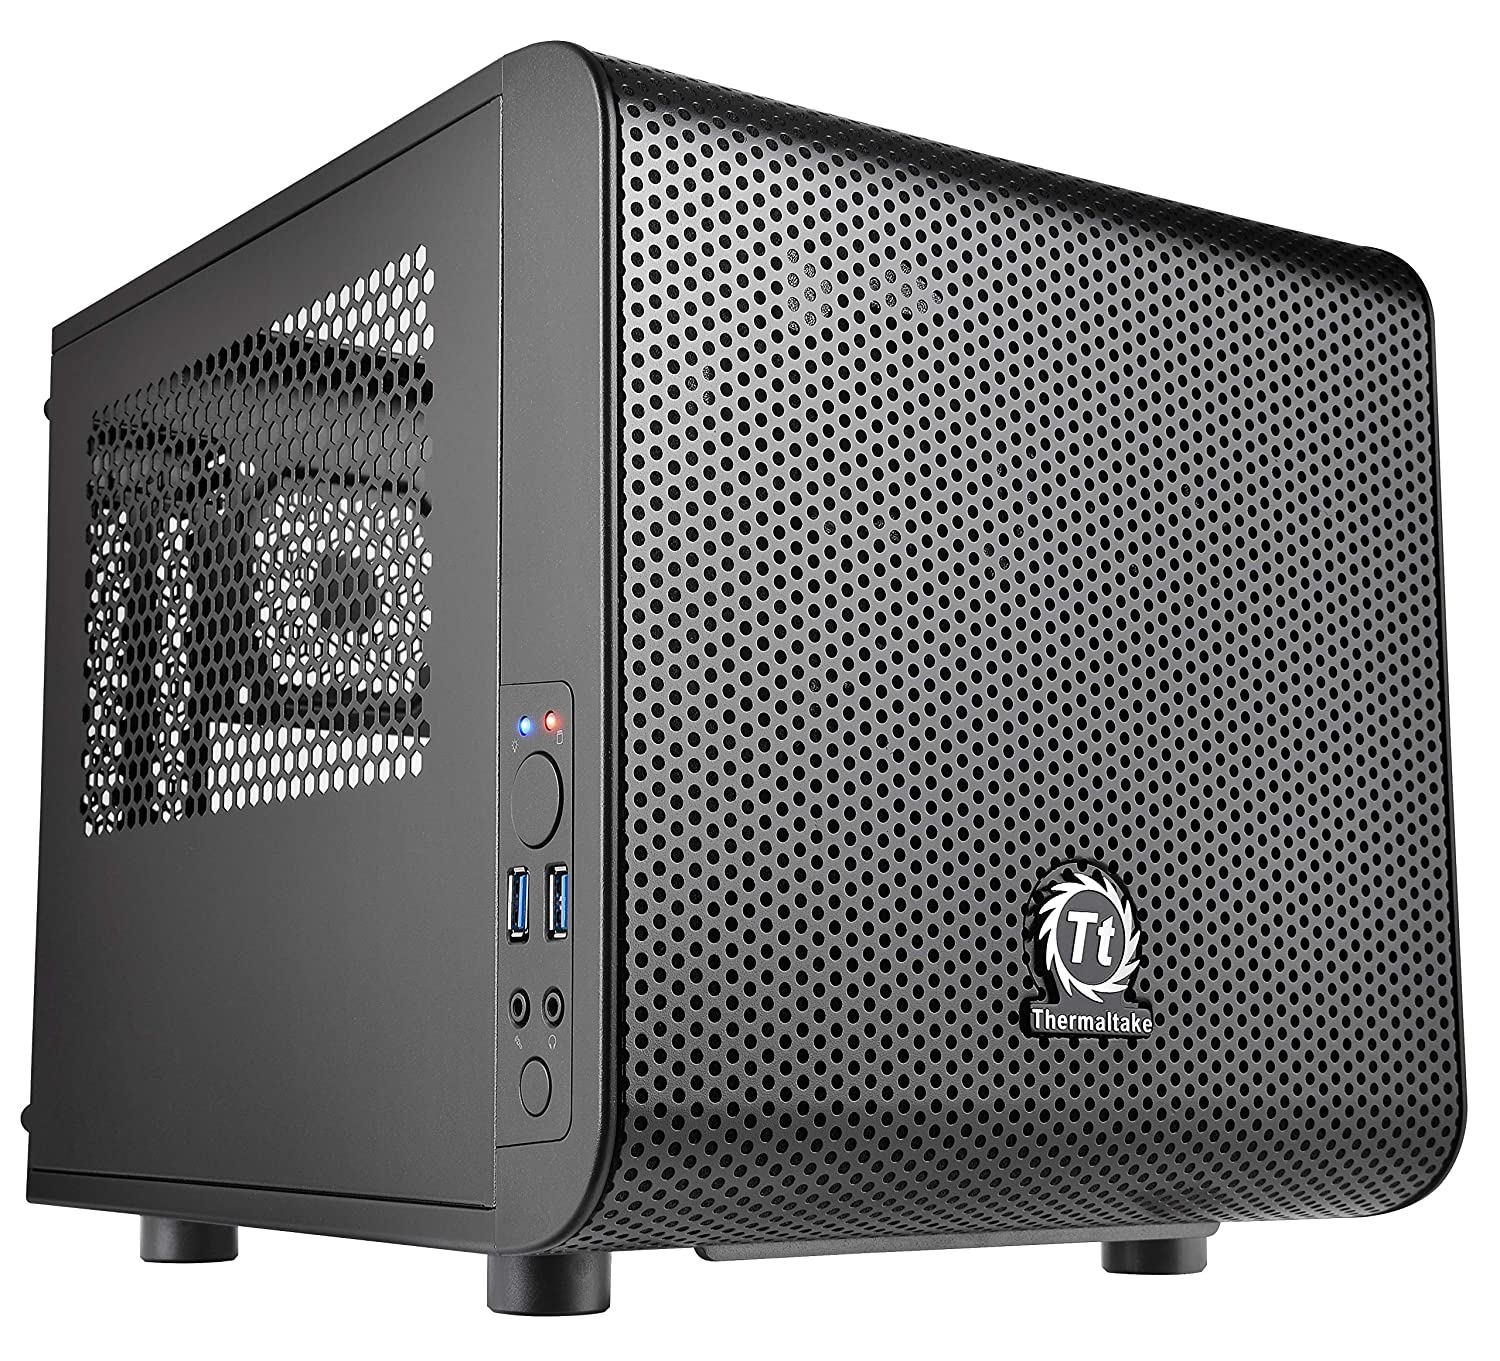 Thermaltake Core V1 SPCC Mini ITX Cube Gaming Computer Case Chassis, Interchangeable Side Panels, Black Edition, CA-1B8-00S1WN-00